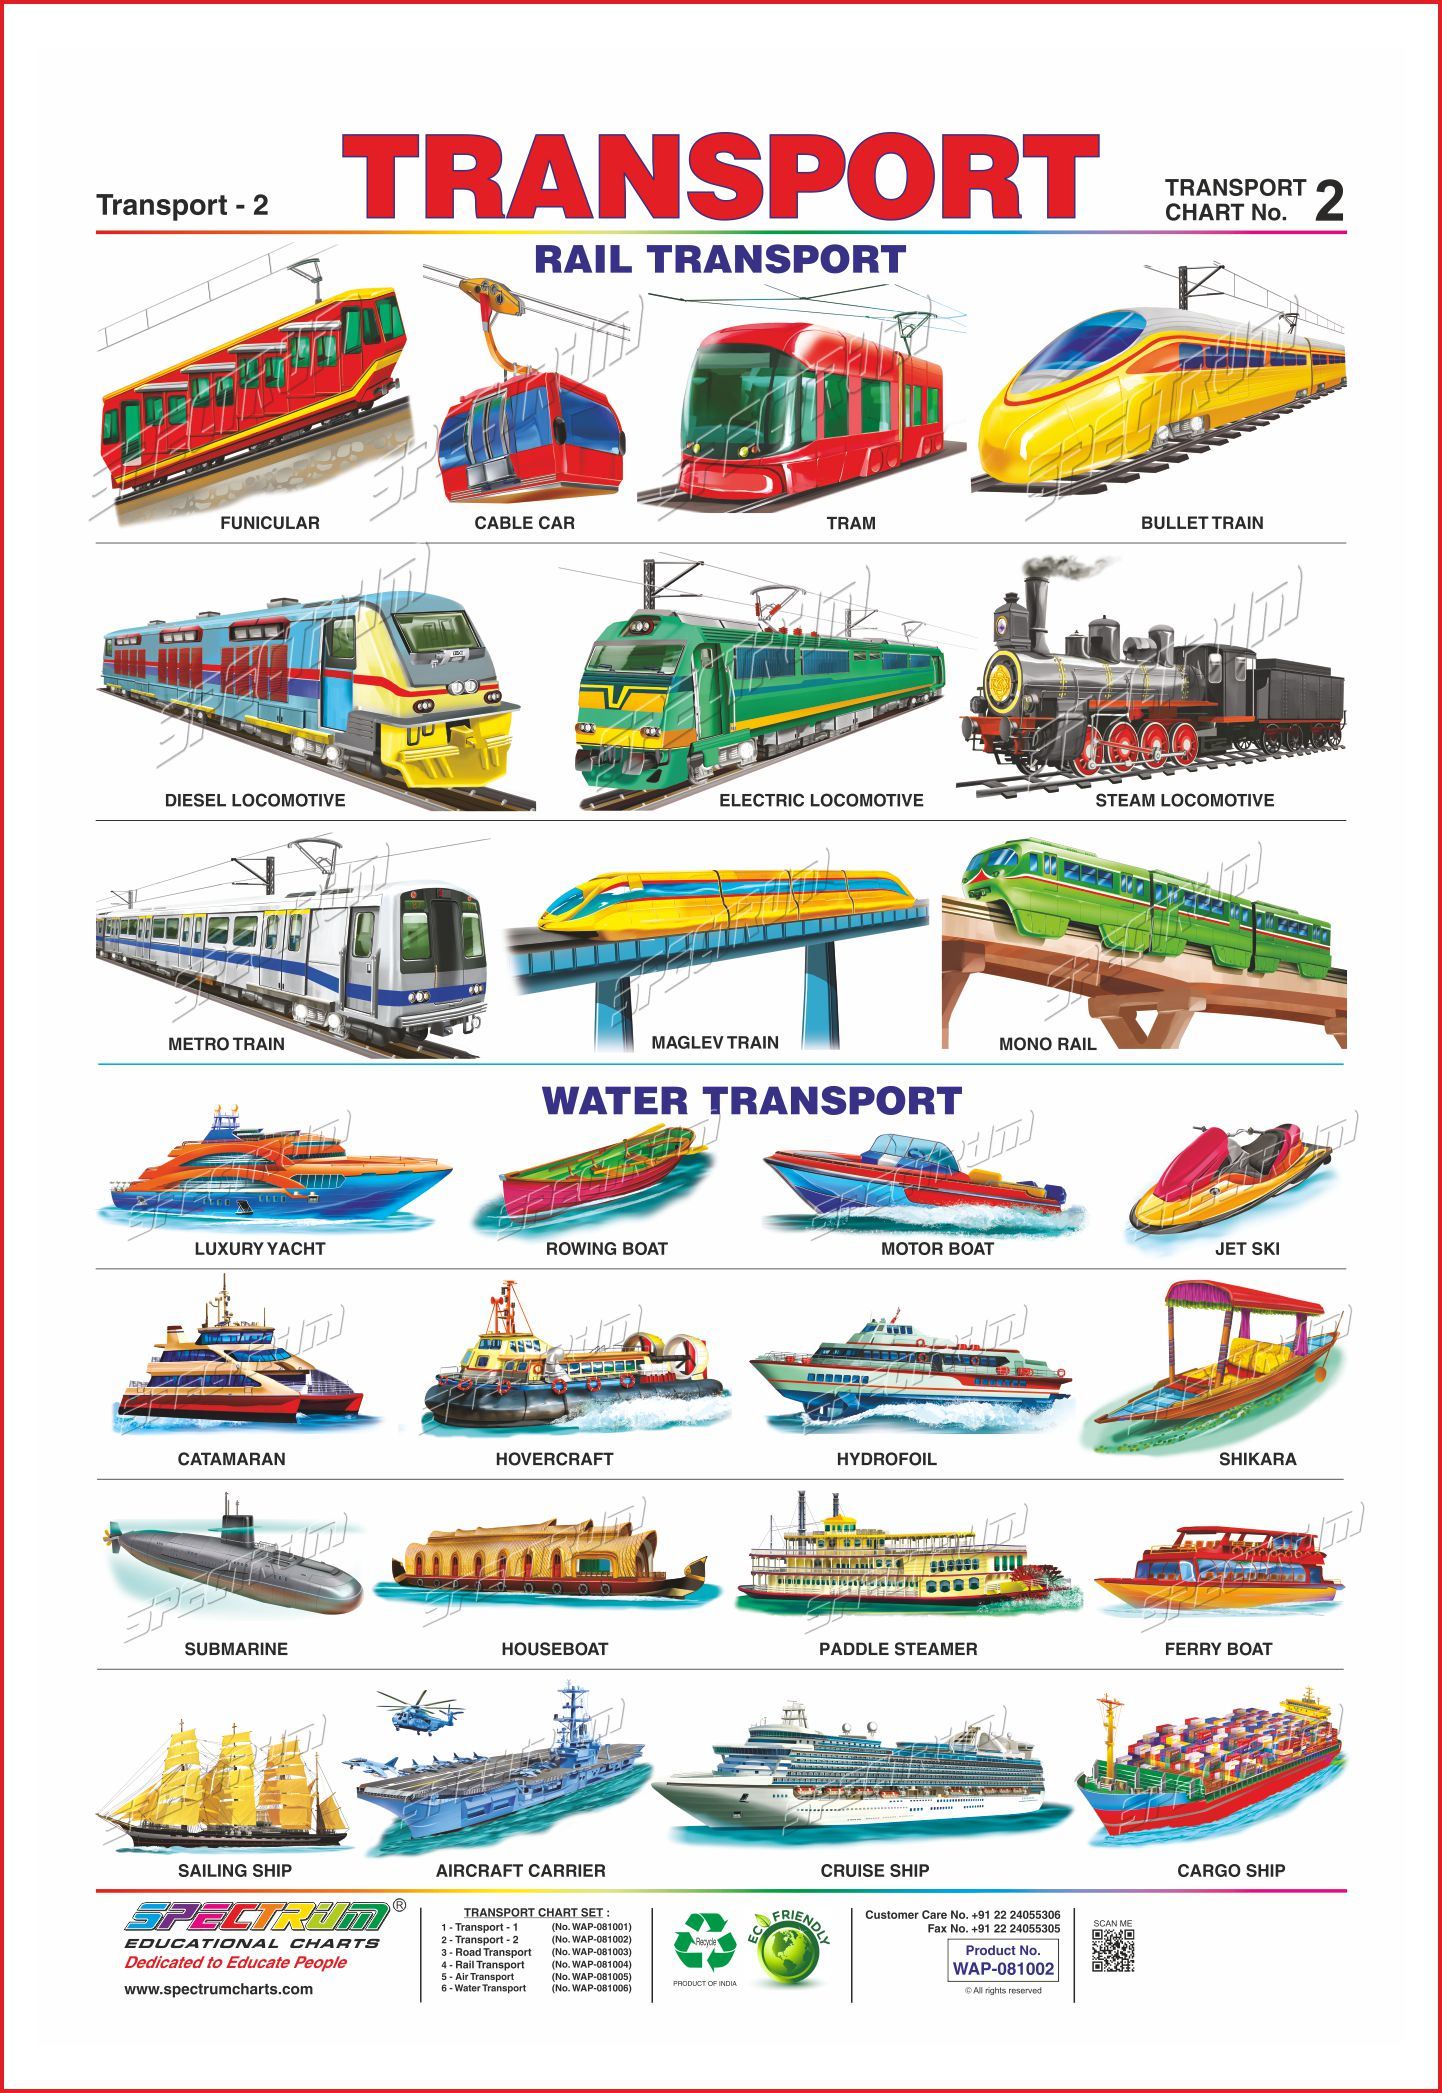 Tram clipart rail transport Of Welcome transportation transport water